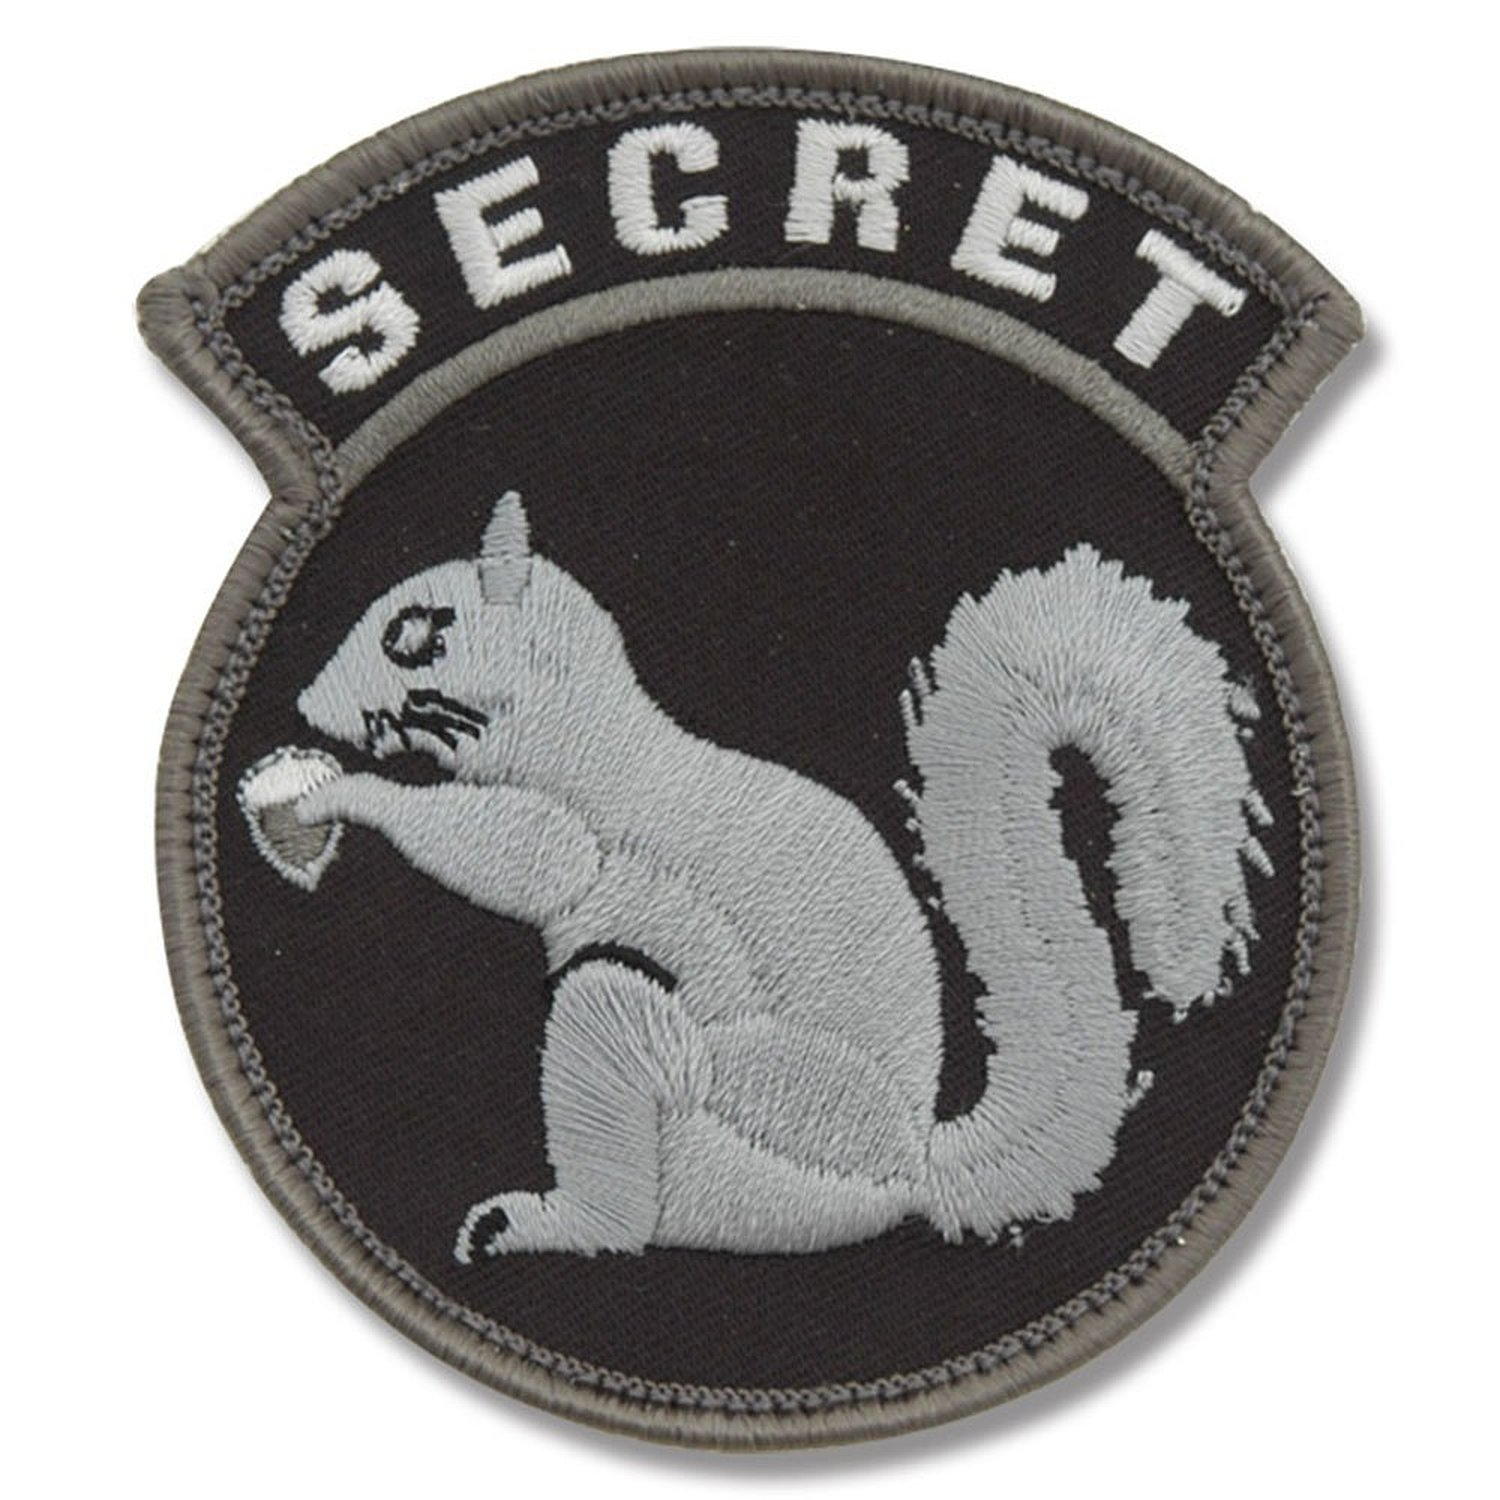 Awesome secret squirrel patch